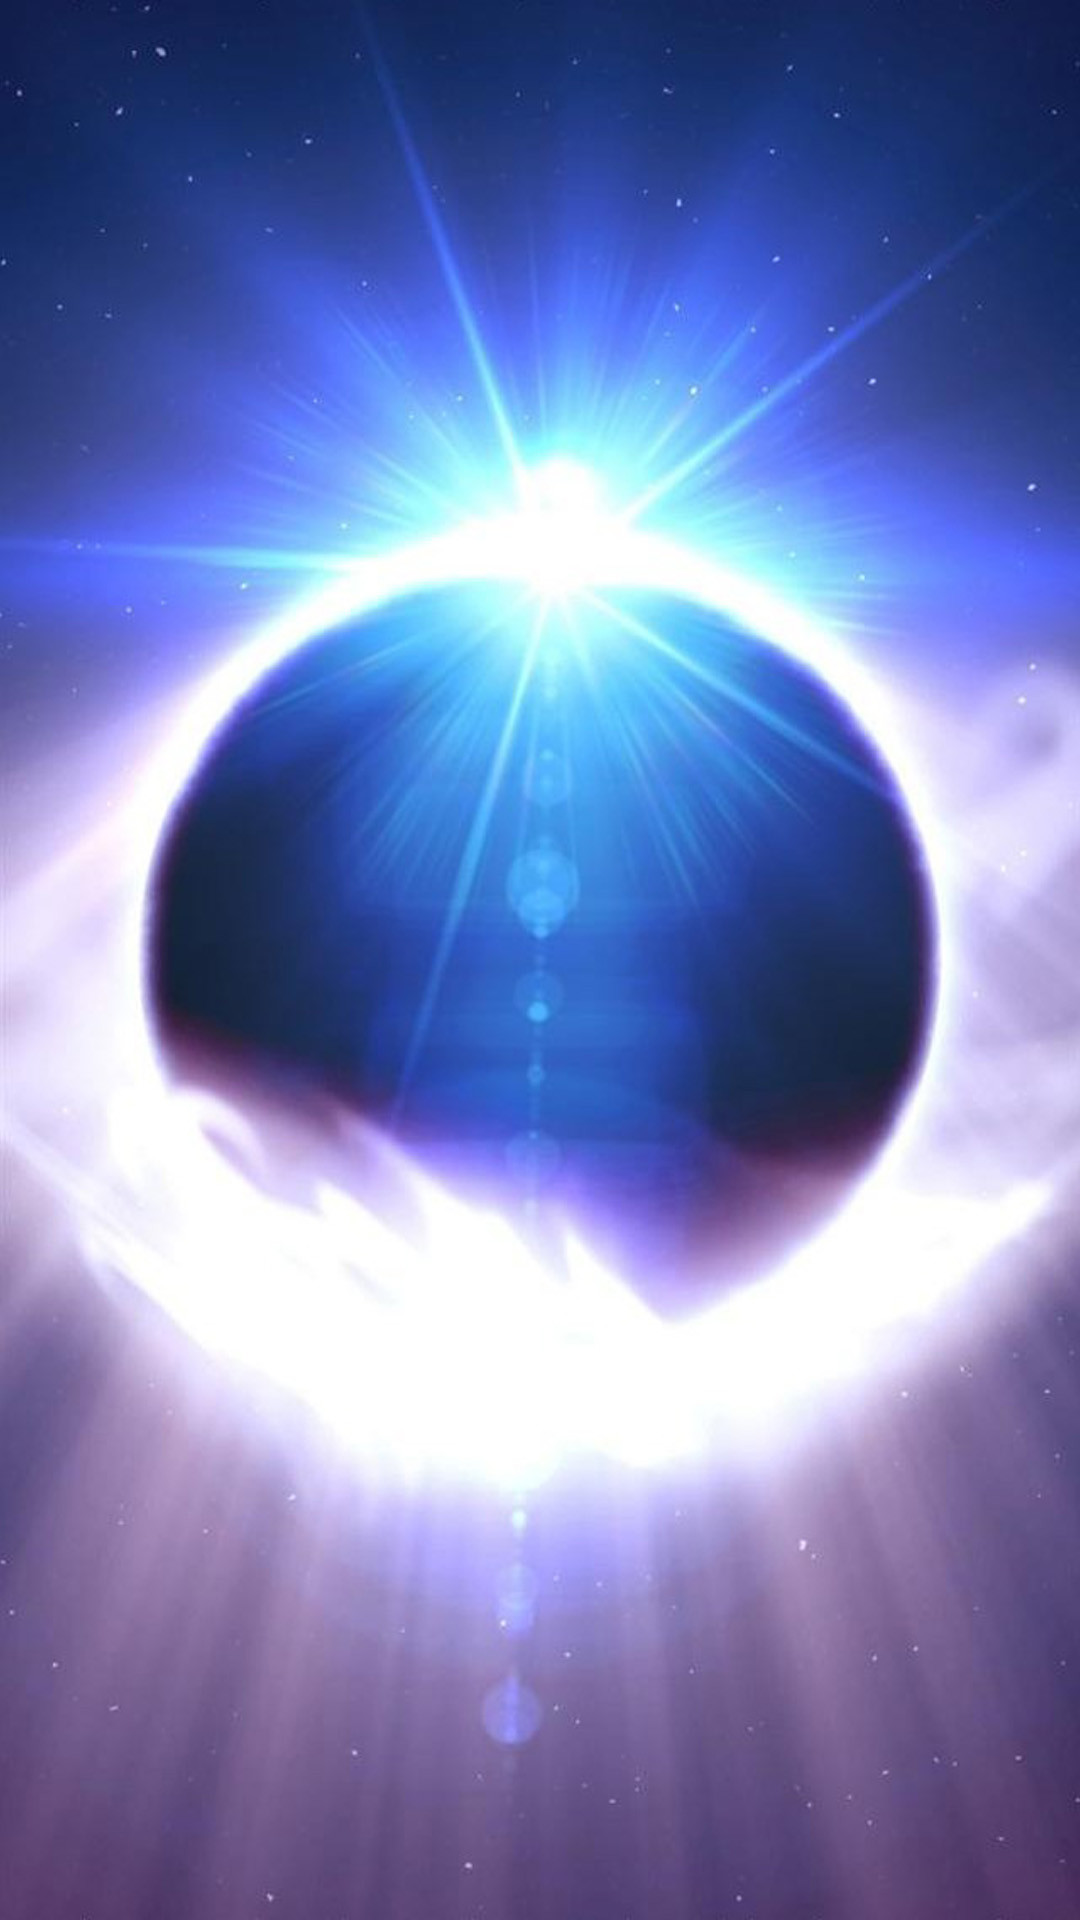 Space Solar Eclipse iPhone 6 wallpaper